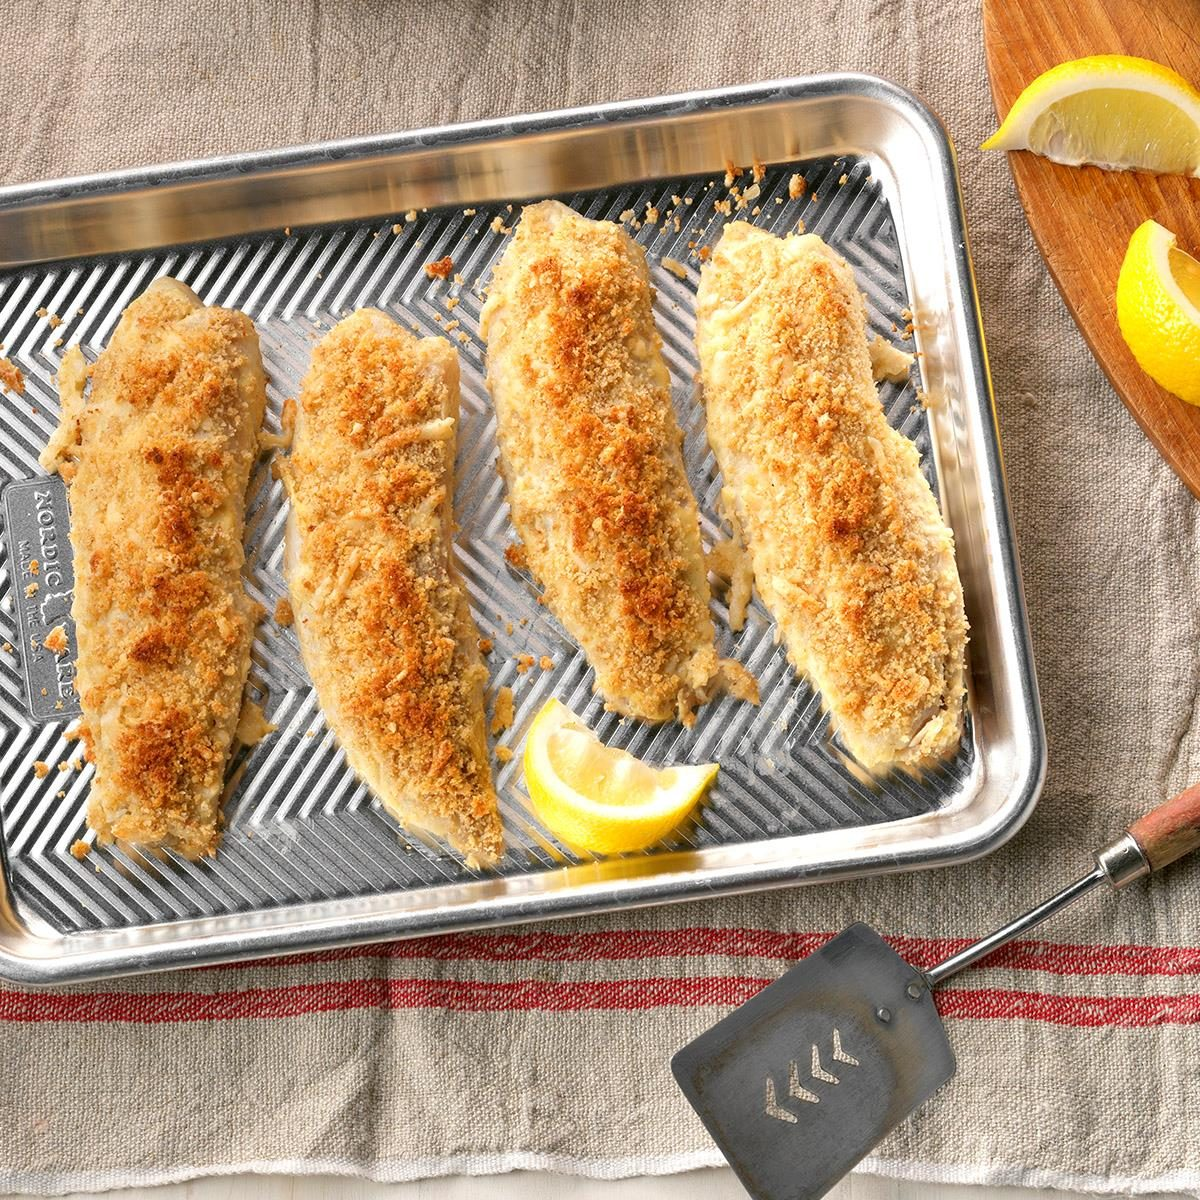 Crusted fish on a baking sheet